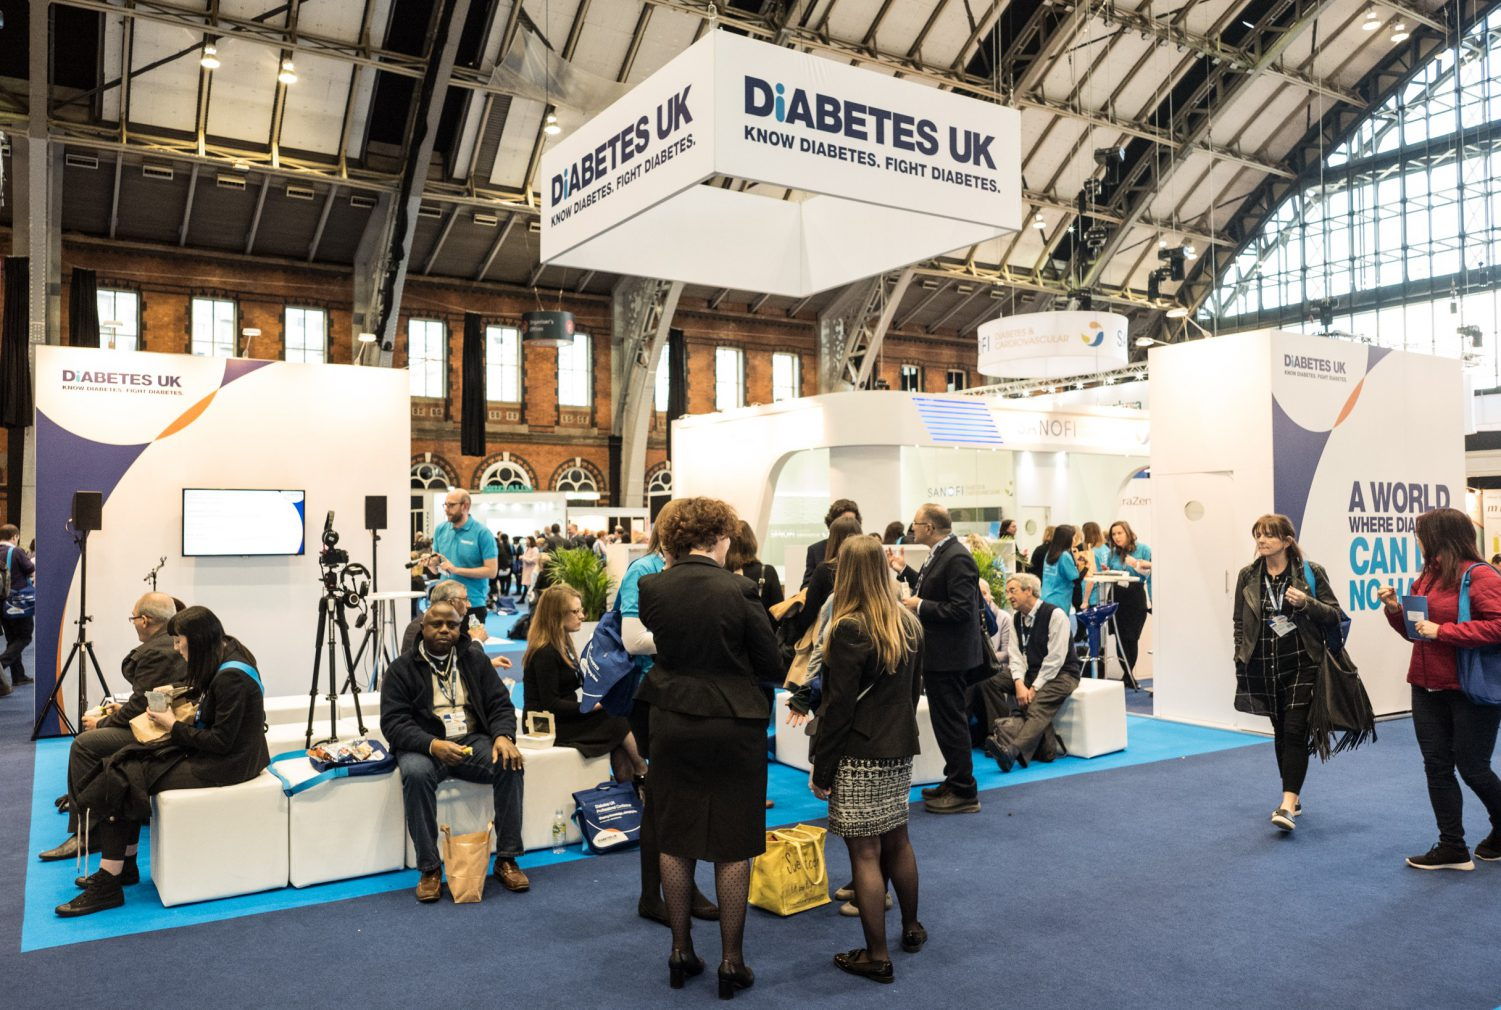 Exhibition Stand Contractors Uk : Event services year milestone with diabetes uk